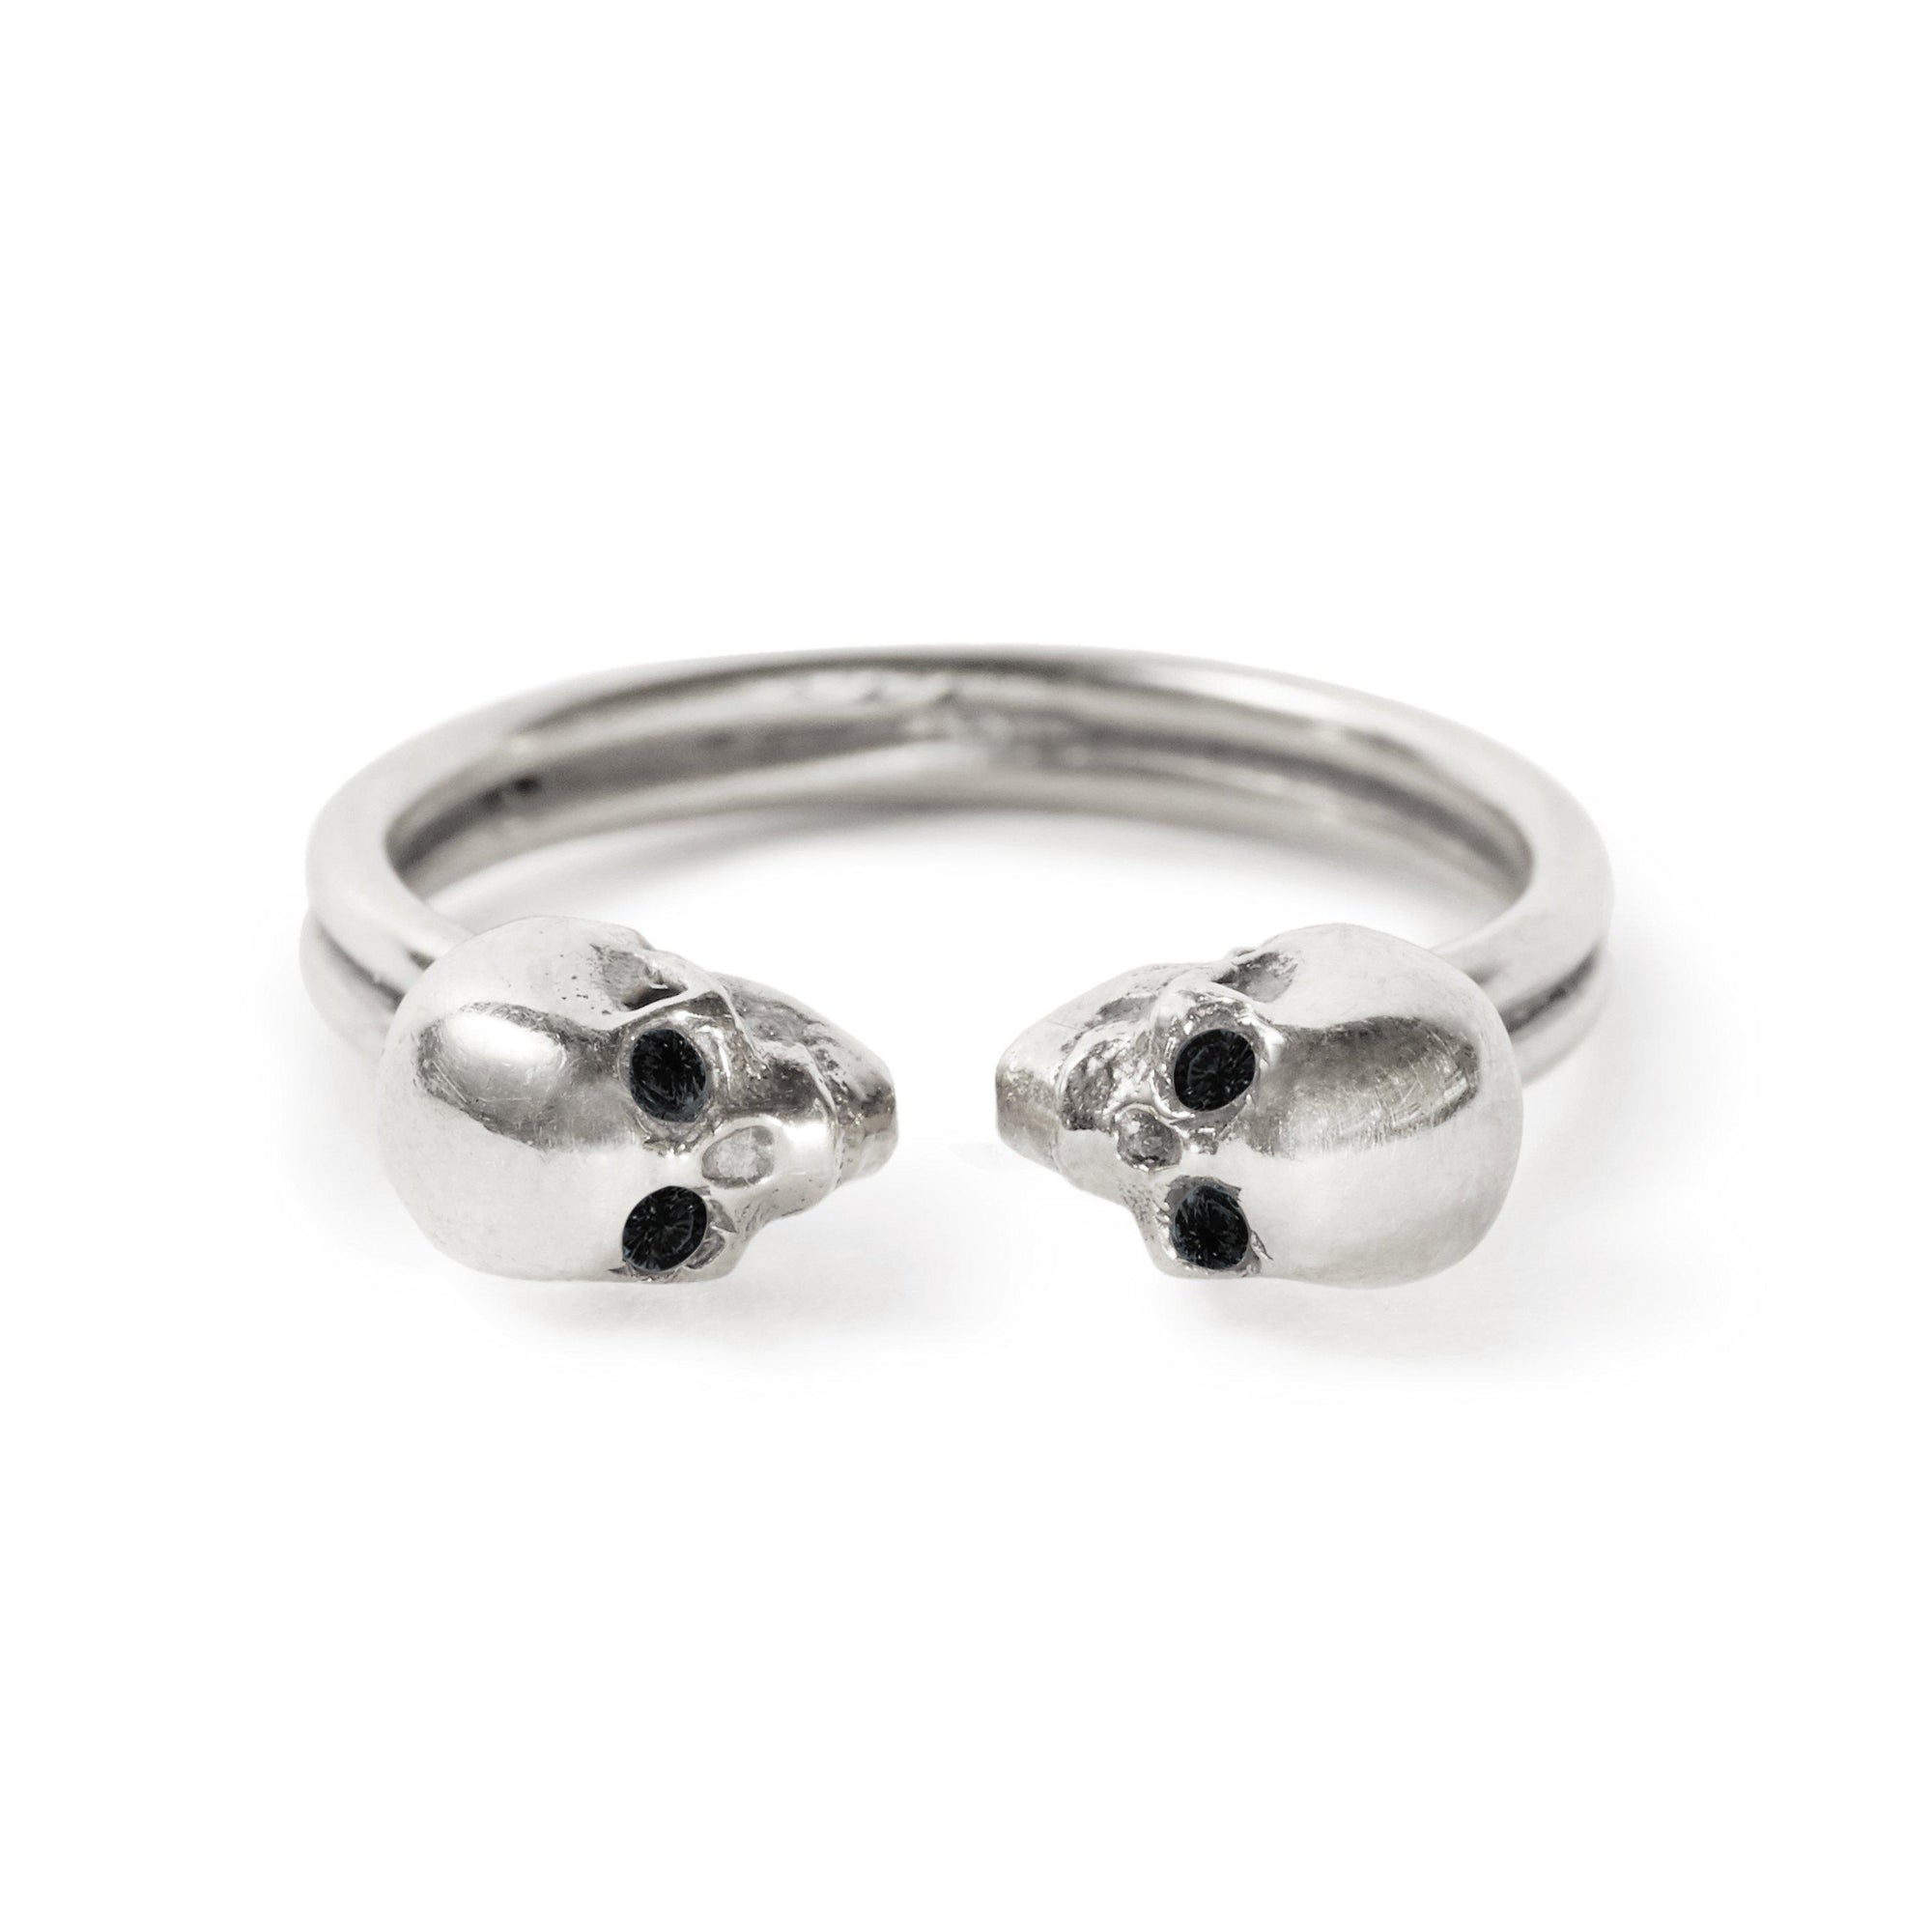 The Silver Kissing Skull Ring With Diamond Eyes